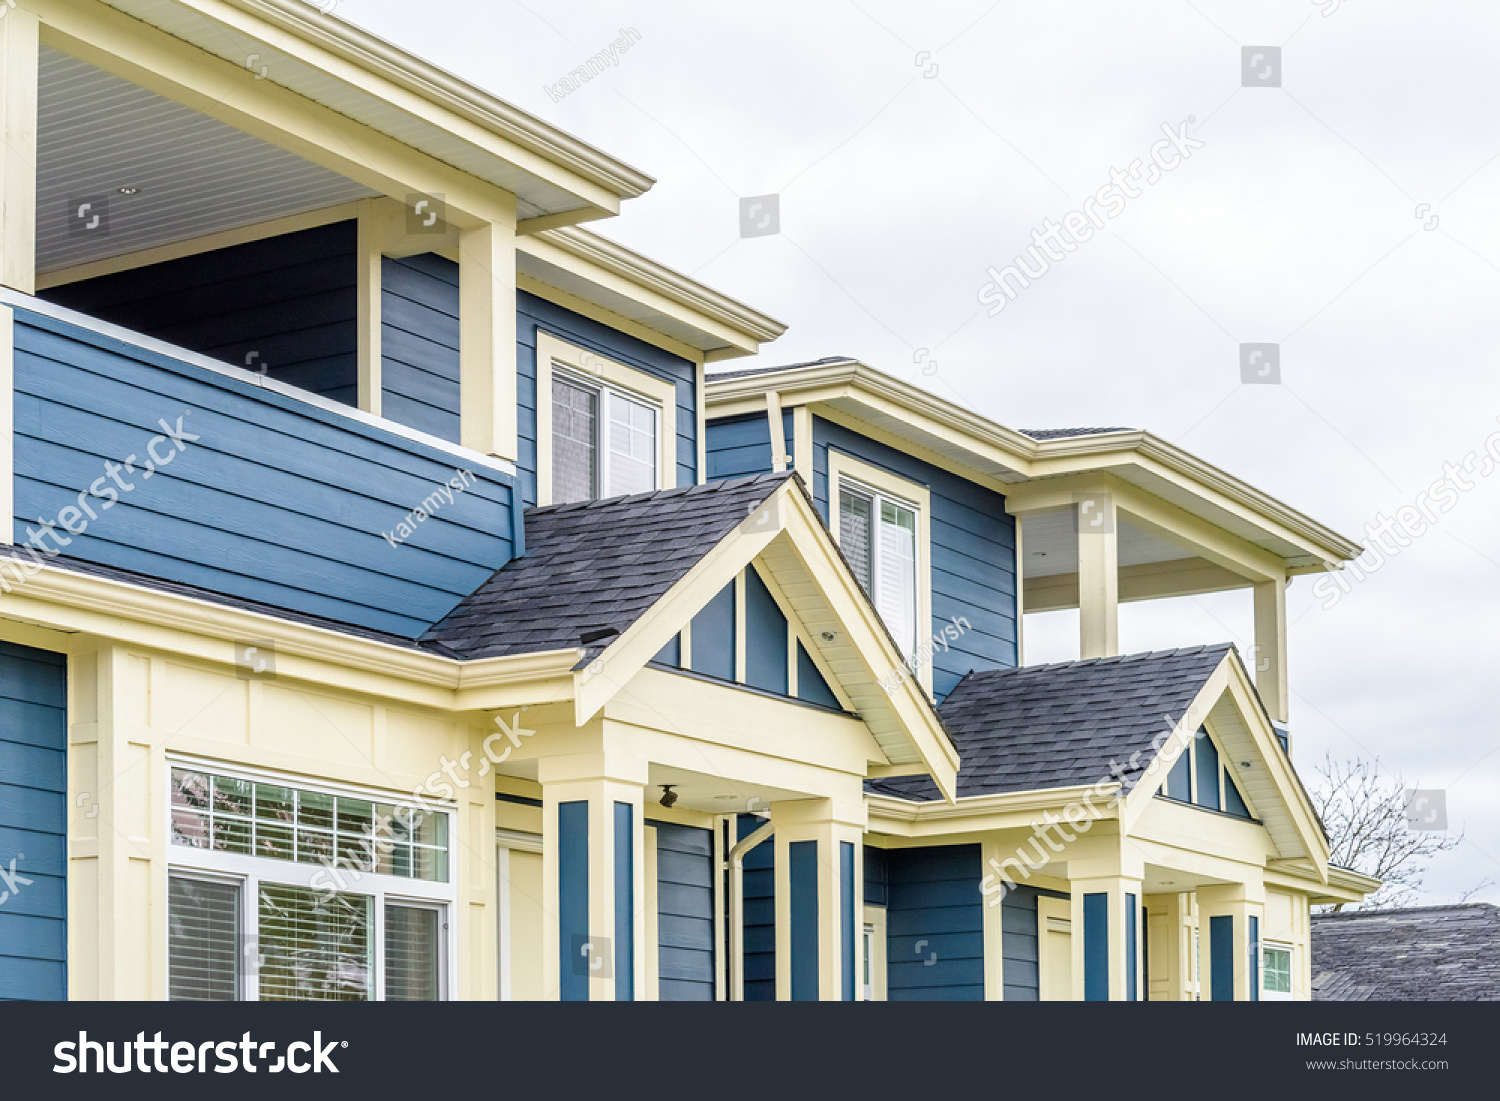 top house apartment building nice window stock photo 519964324 shutterstock. Black Bedroom Furniture Sets. Home Design Ideas